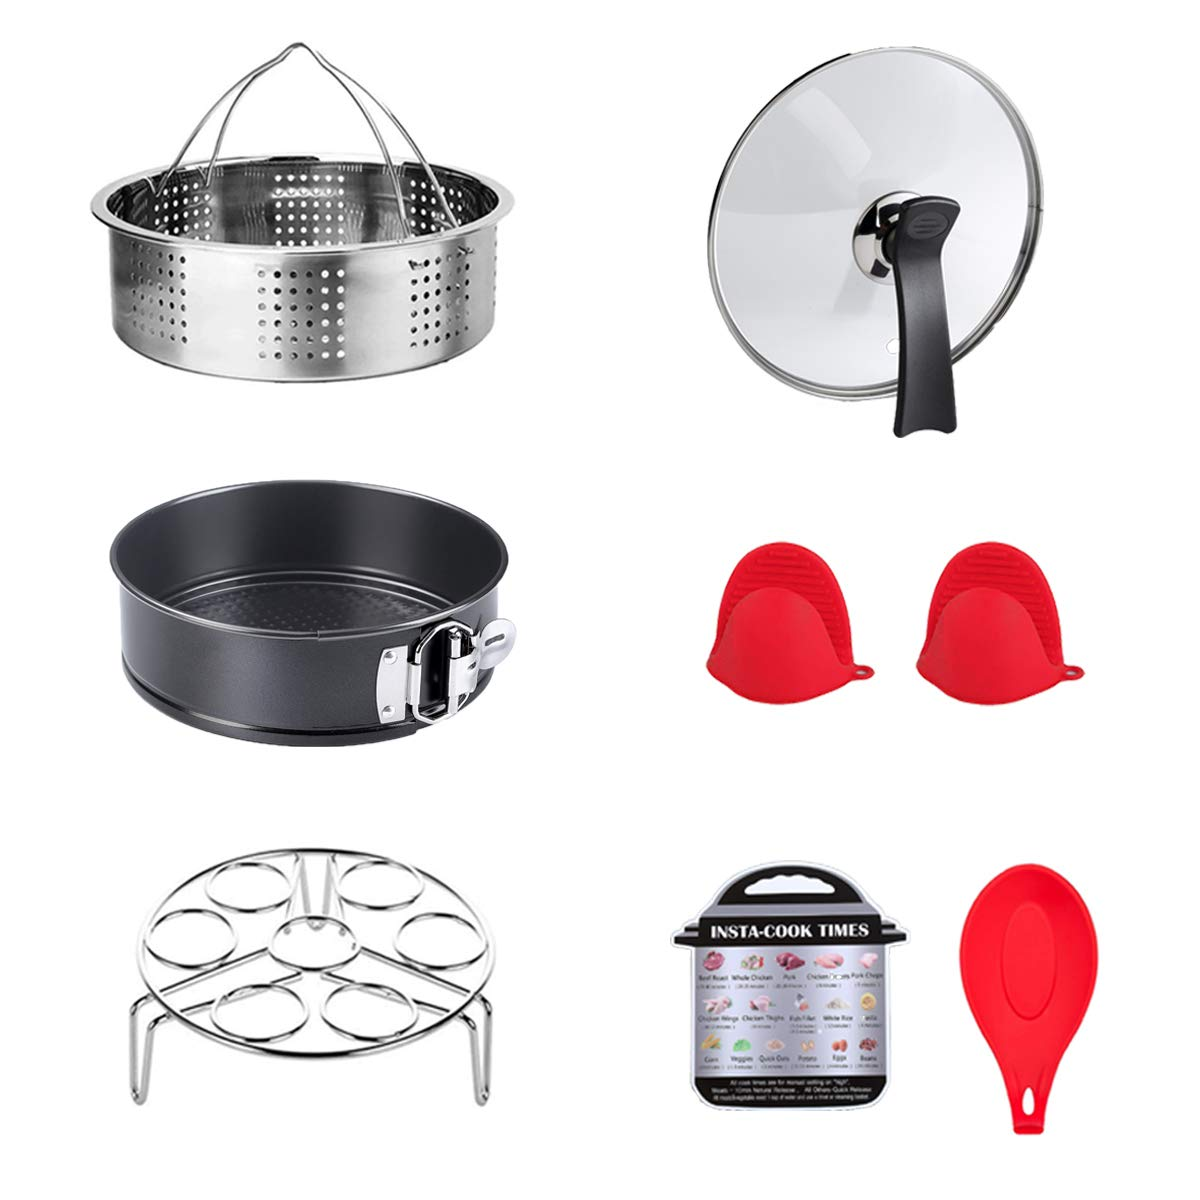 ULEE Accessories Compatible with Instant Pot 6 Qt - Including Steamer Basket, Glass Lid, Springform Pan, Egg Rack, Oven Mitts, Magnetic Cheat Sheet, Spoon Rest